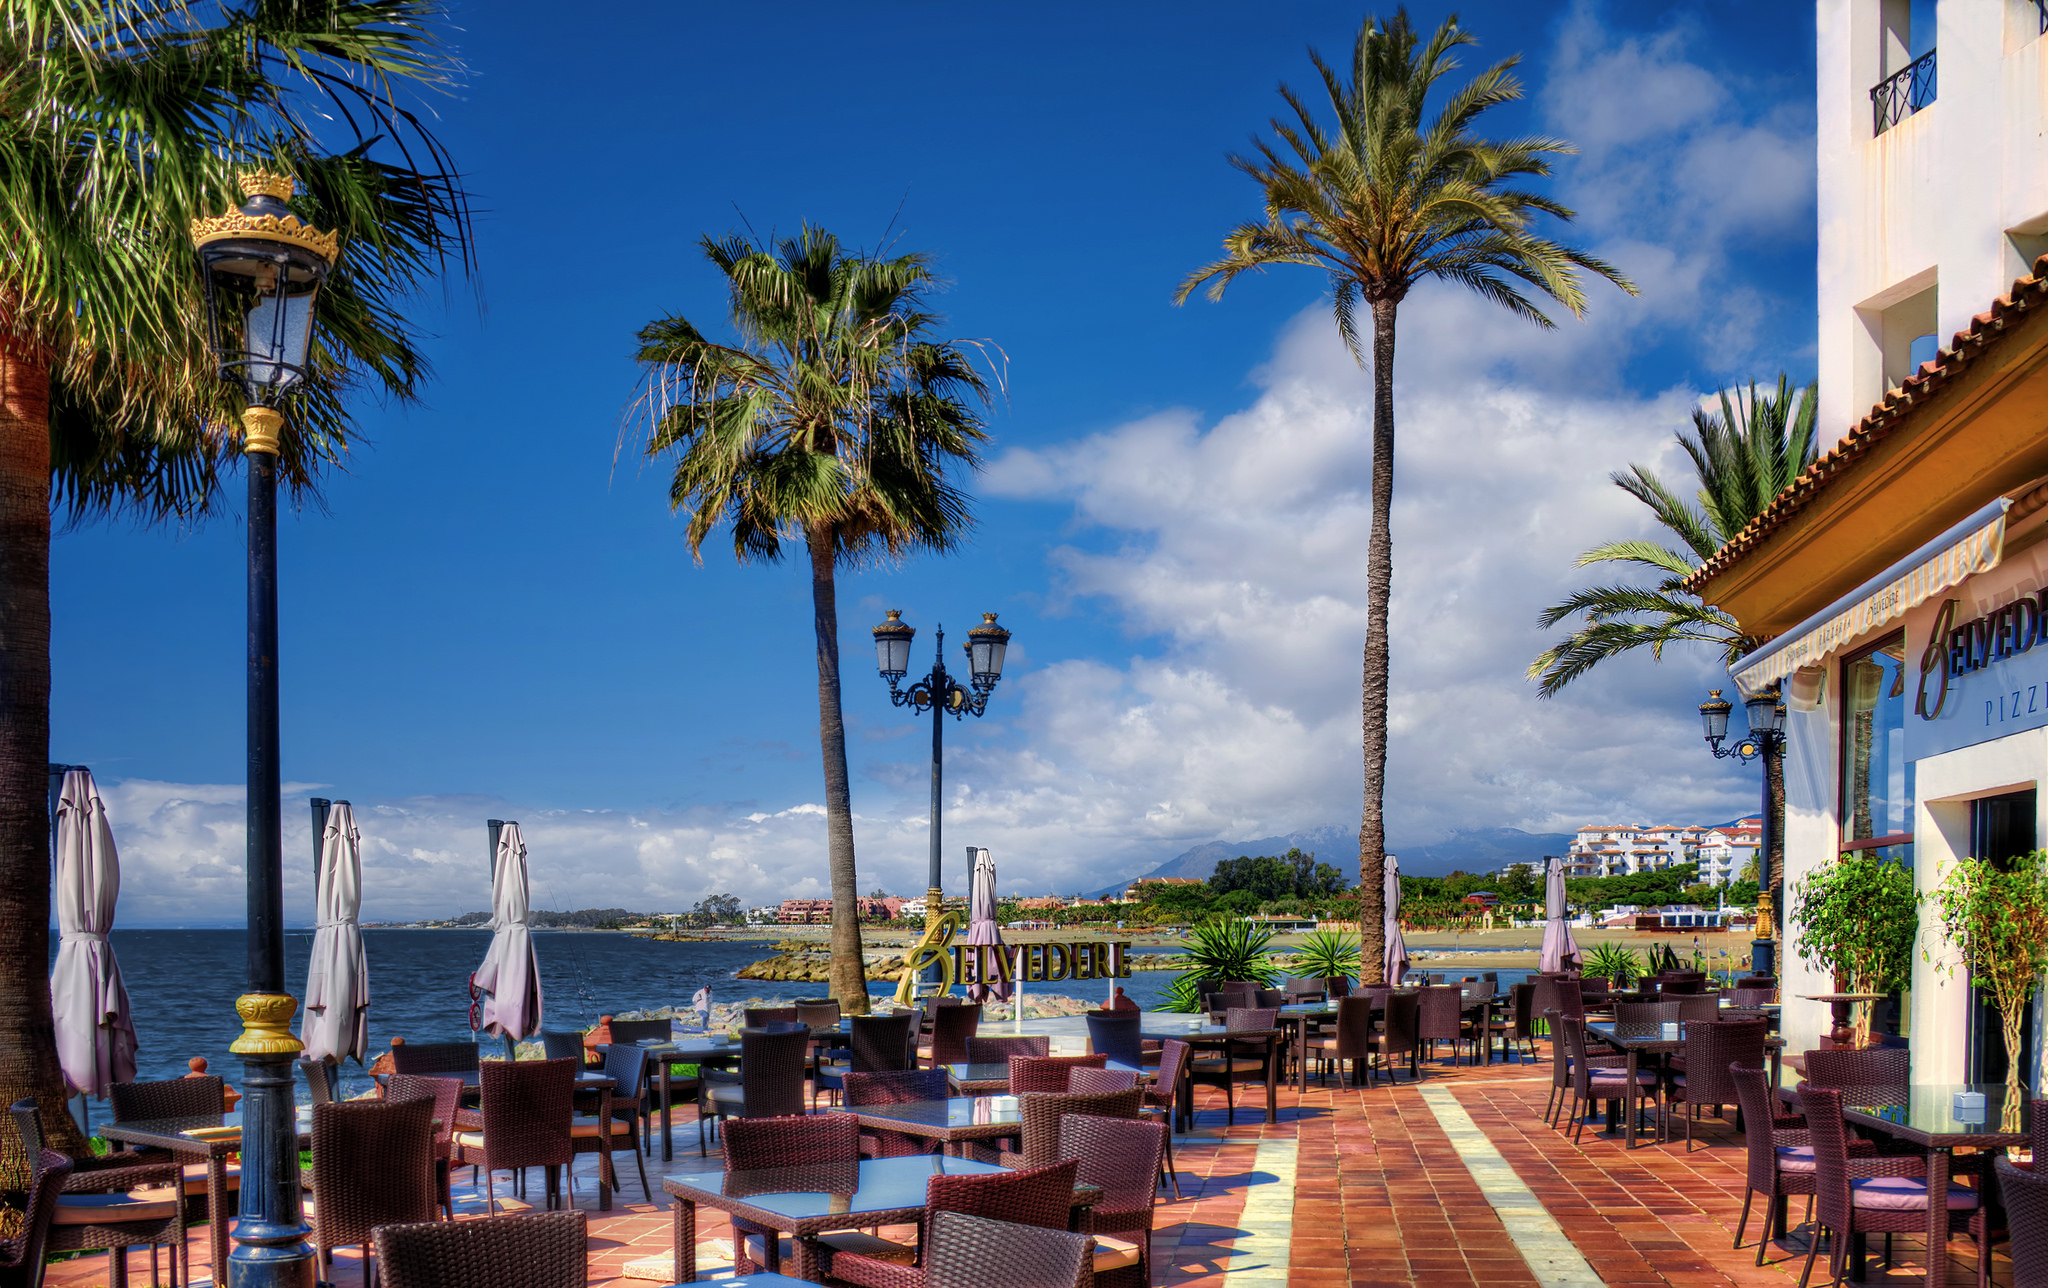 10 Restaurants to Go in Lloret de Mar